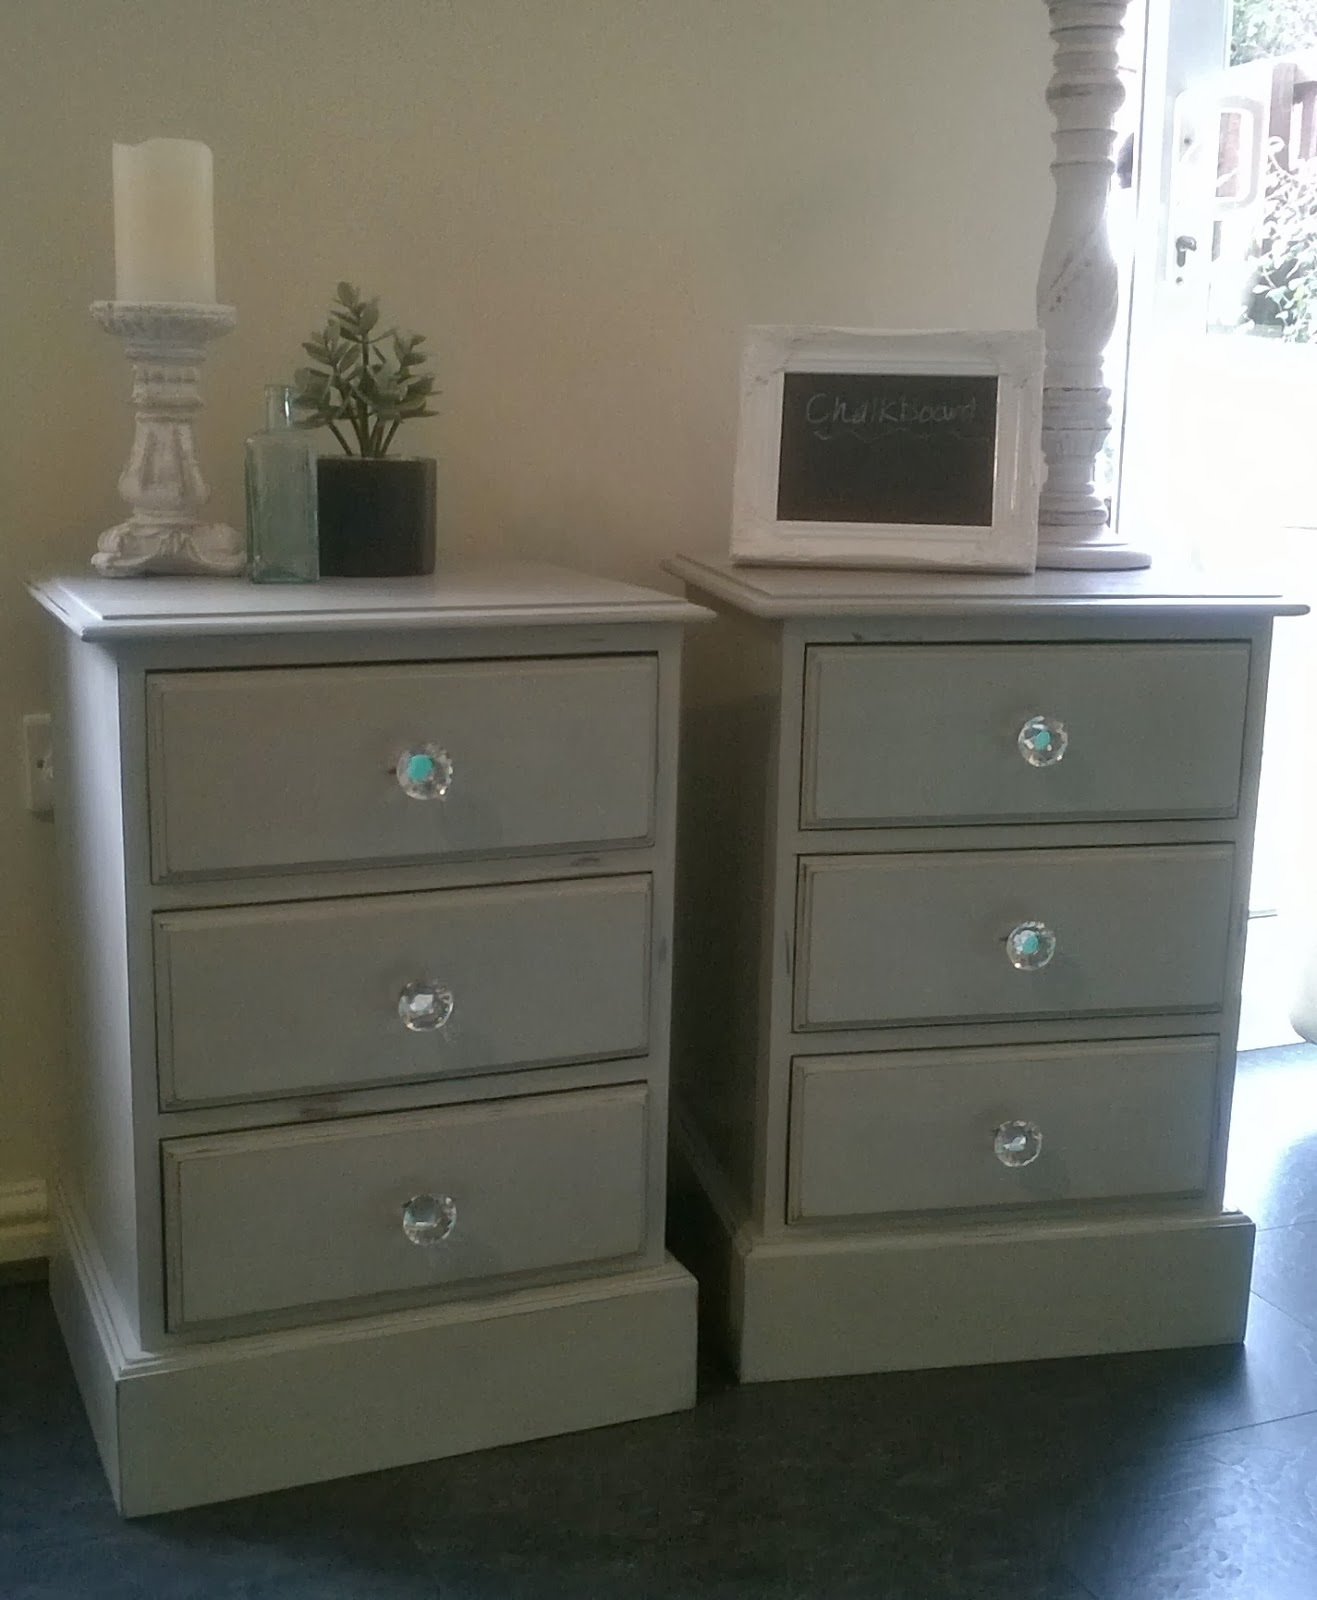 The shabby chic sisters annie sloan paris grey bedside cabinets - Bedside table for small space paint ...